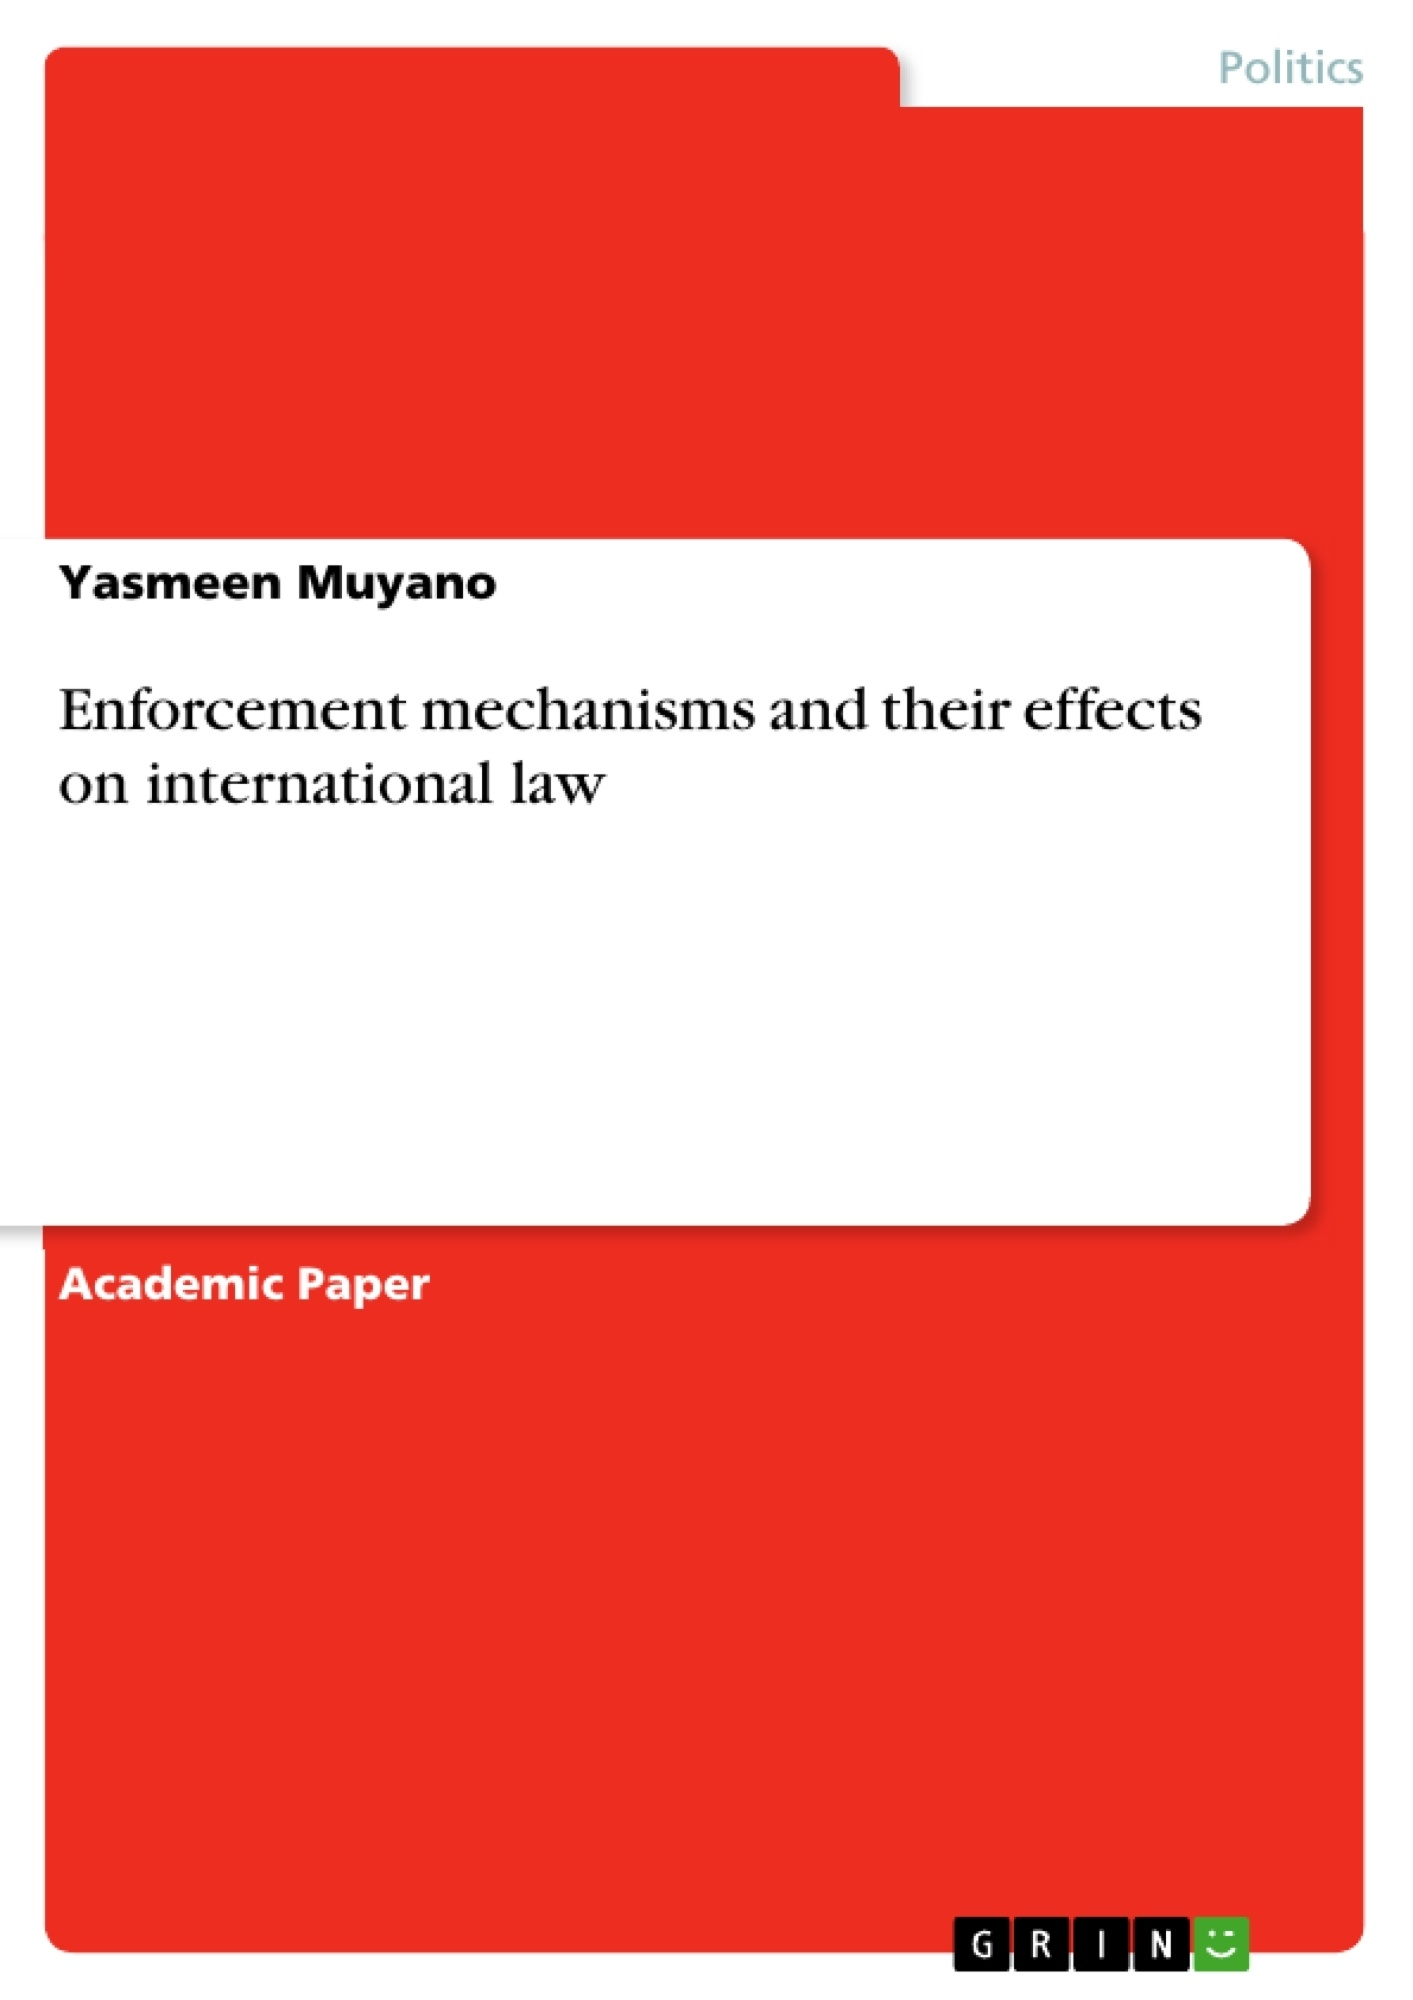 Title: Enforcement mechanisms and their effects on international law